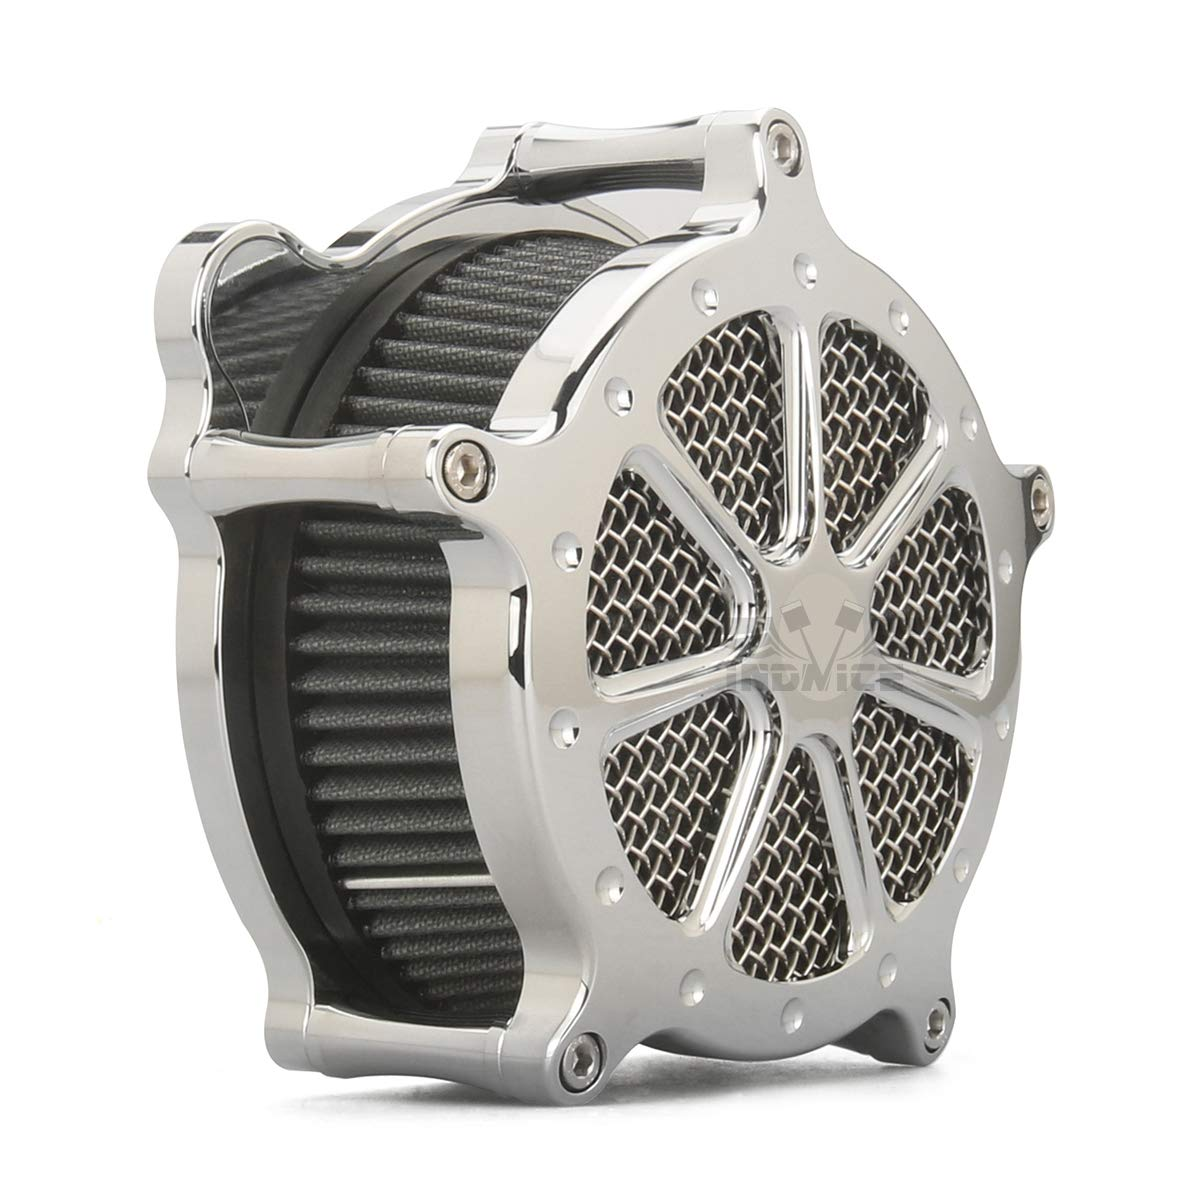 CHROMED AIR CLEANER INTAKE COVER for harley IRON 883 sportster 1991-2019 air filters sportster 883 1200